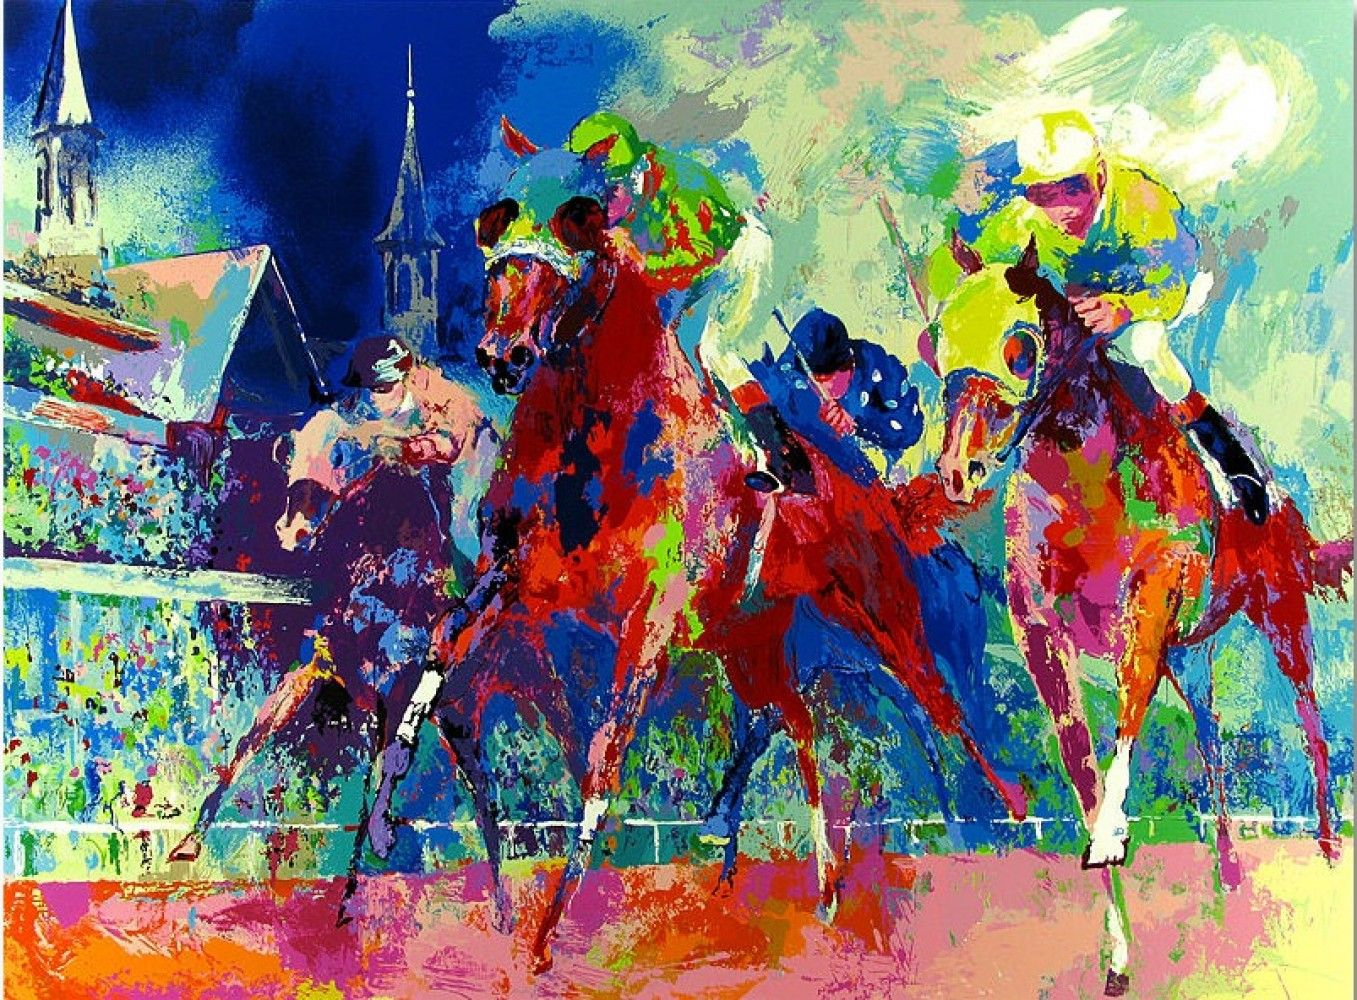 Felix murillo lleno de colores painting acrylic artwork fish art - Leroy Neiman Elephant Oil Painting Oil By Antsartworkoffice